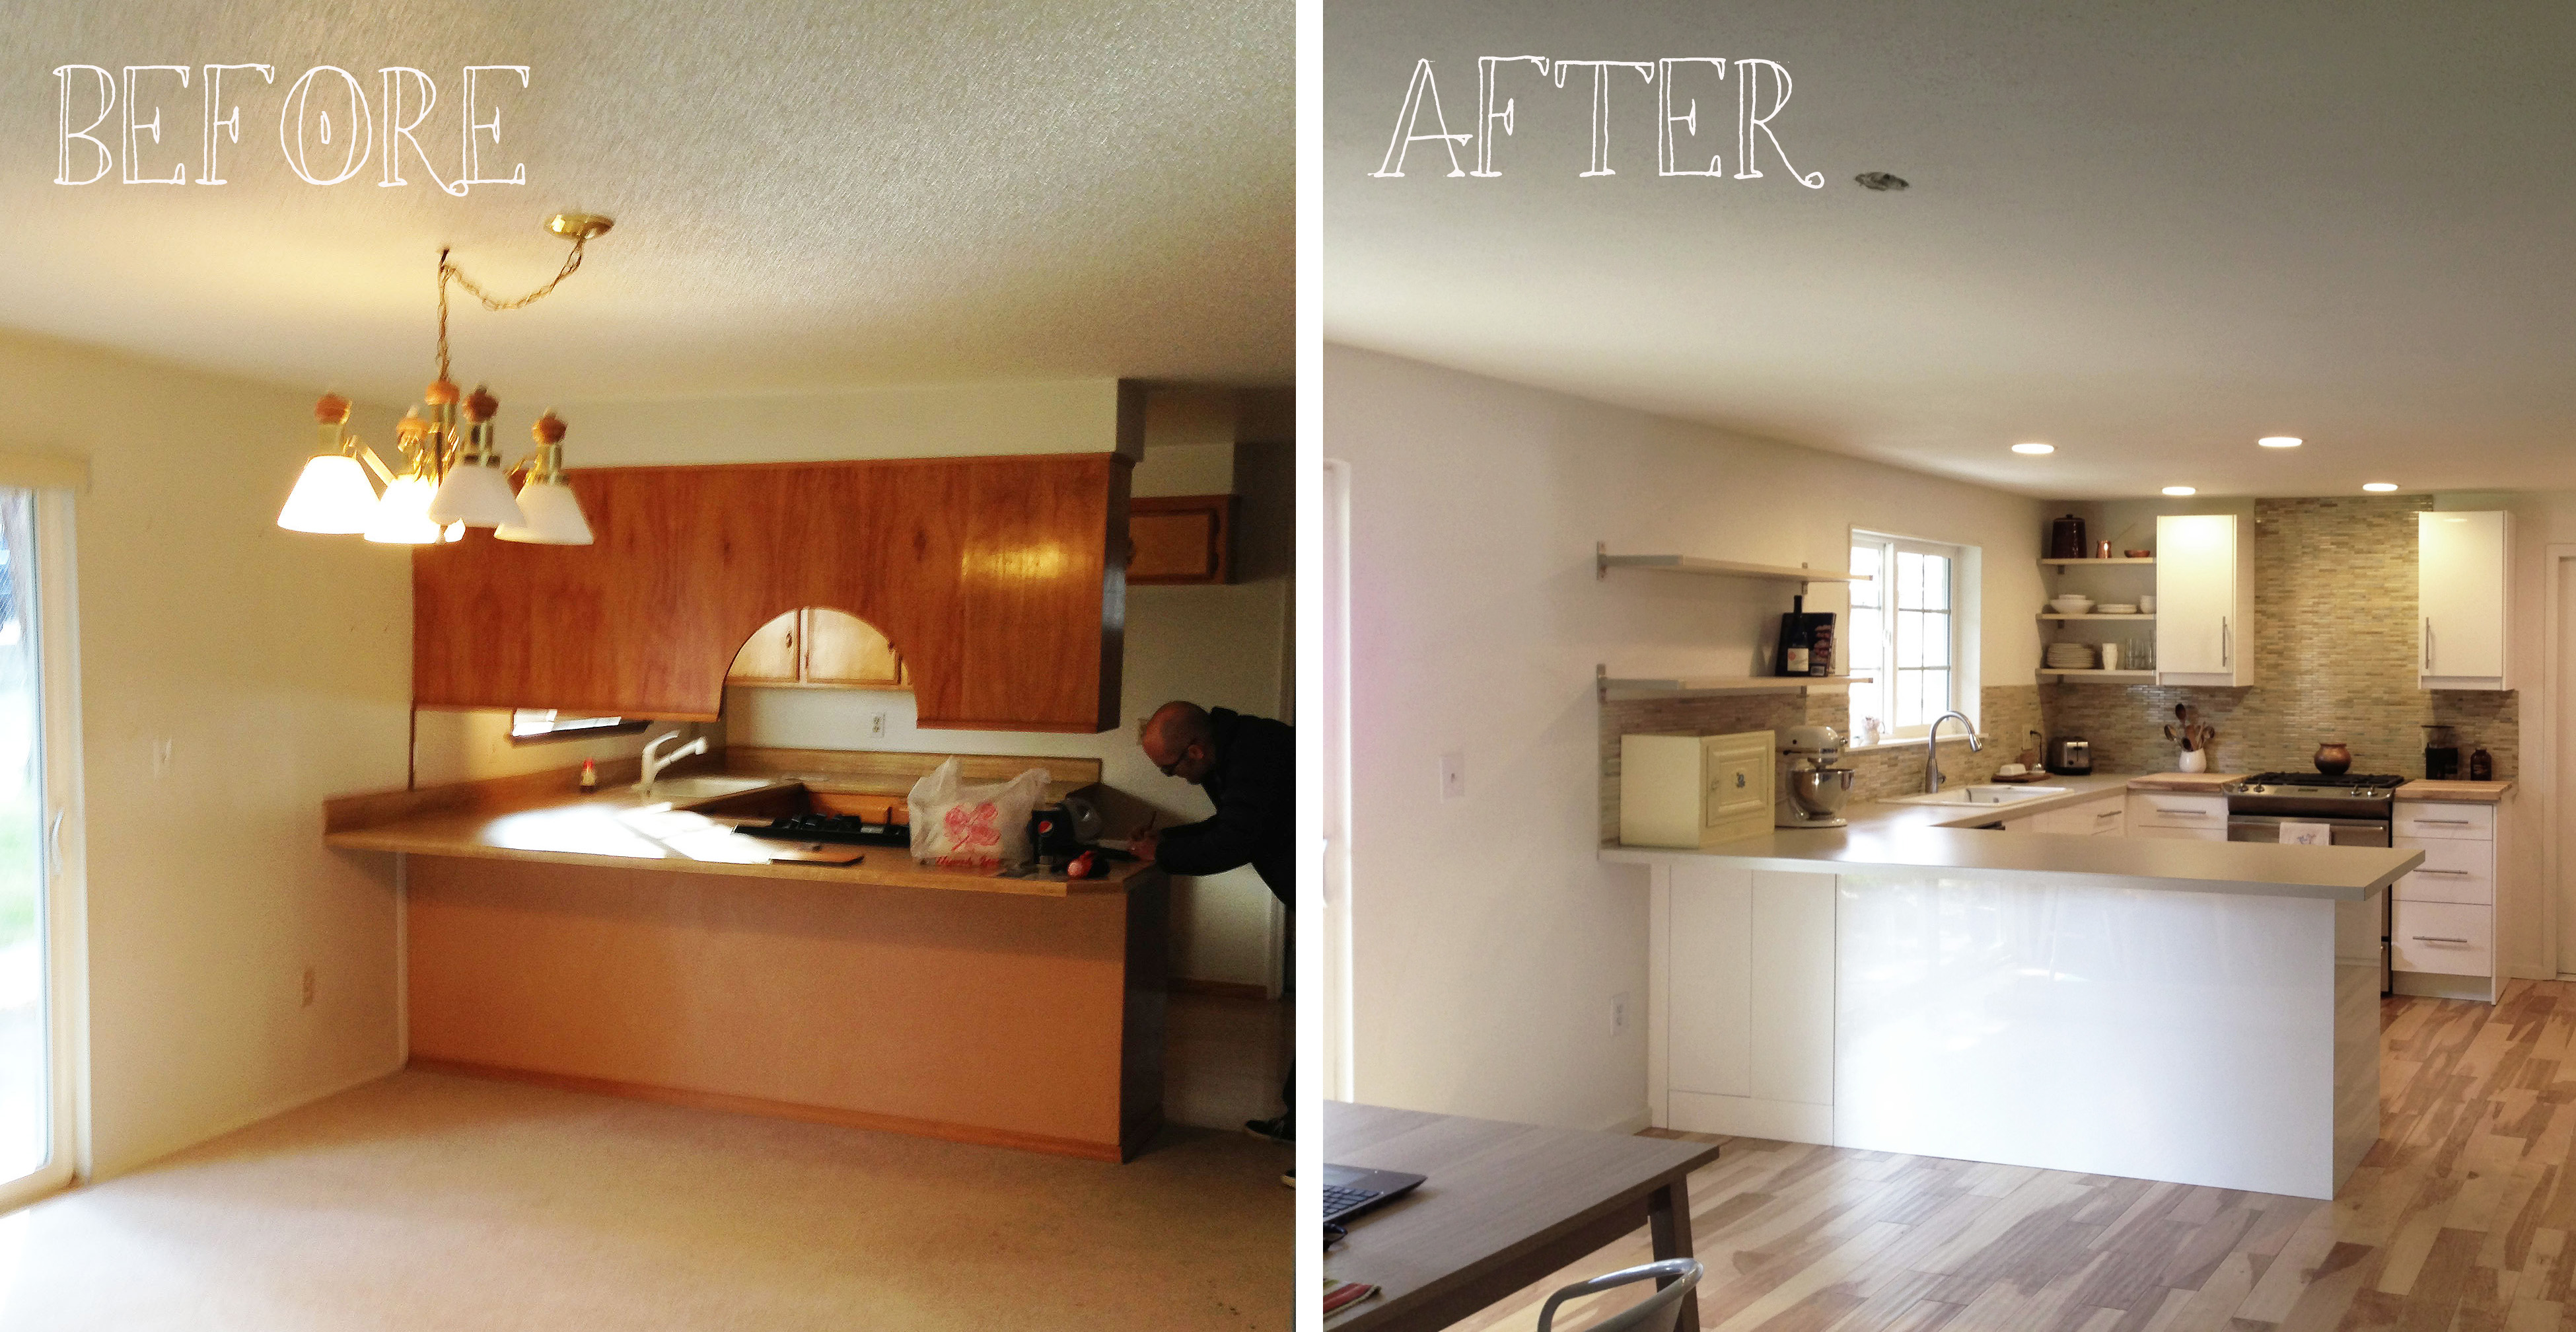 Small Kitchen Remodel Before And After With White Cabinets Backsplashes Combined Sink